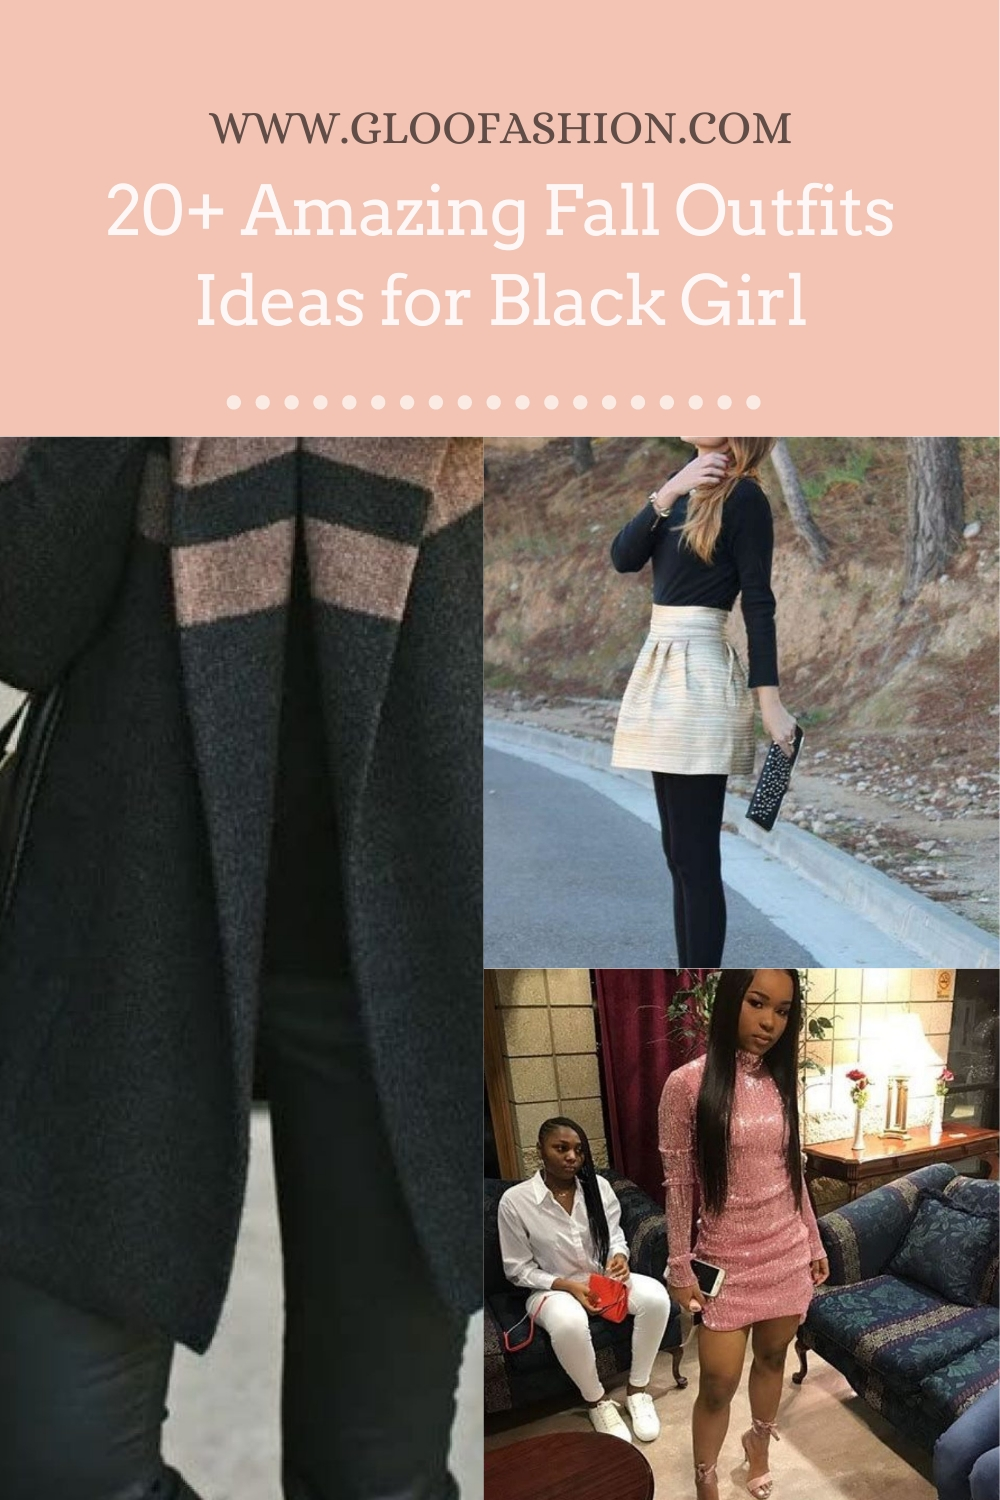 20+ Amazing Fall Outfits Ideas For Black Girl